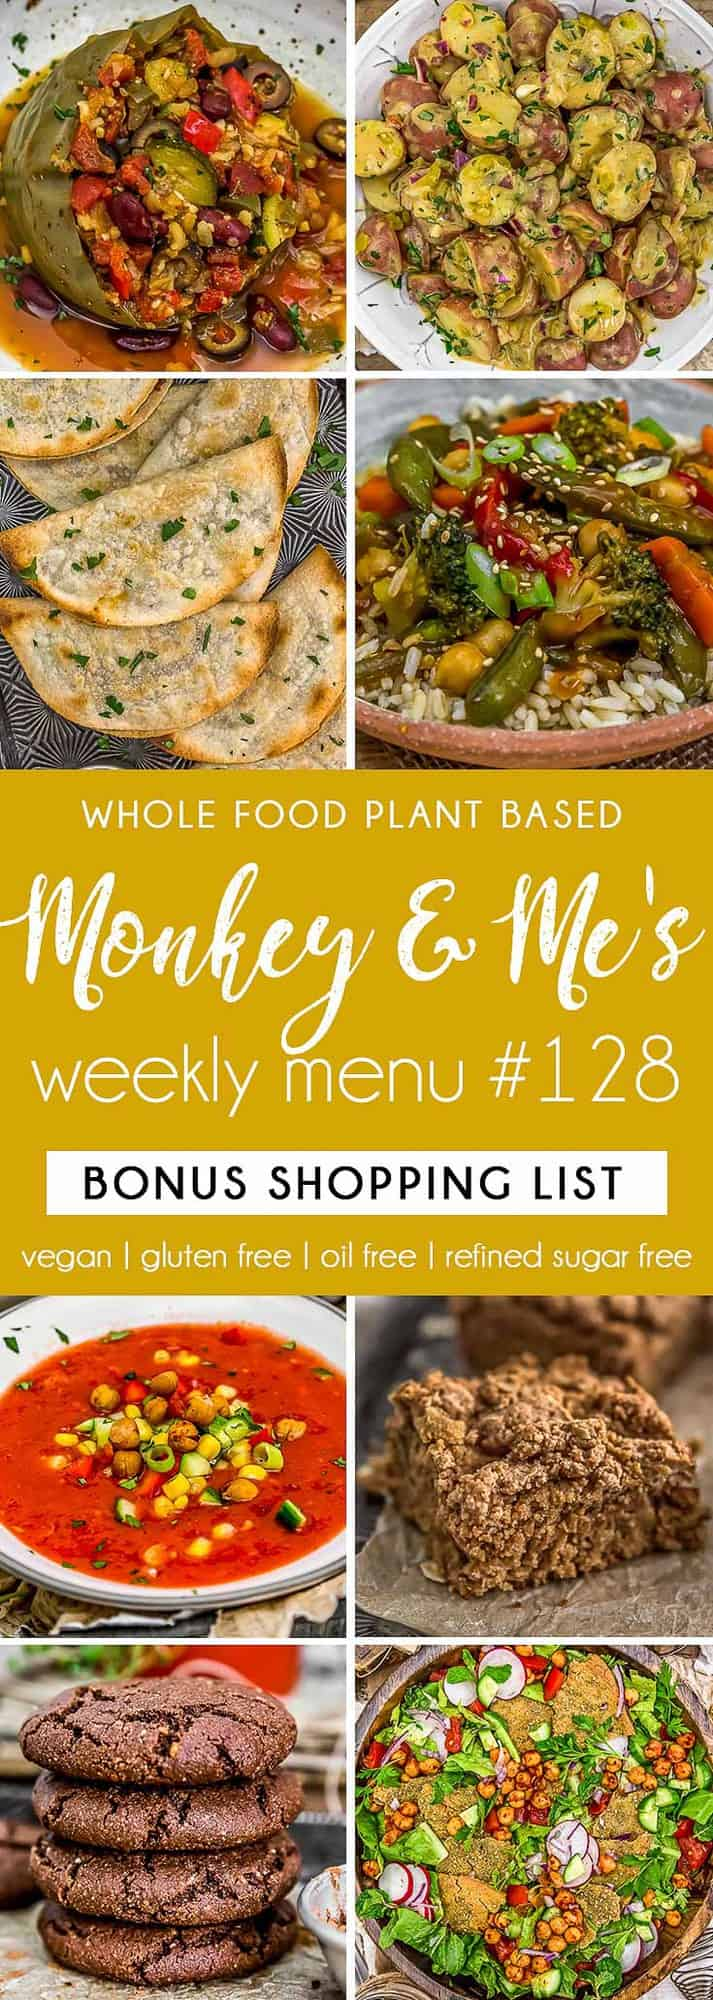 Monkey and Me's Menu 128 featuring 8 recipes